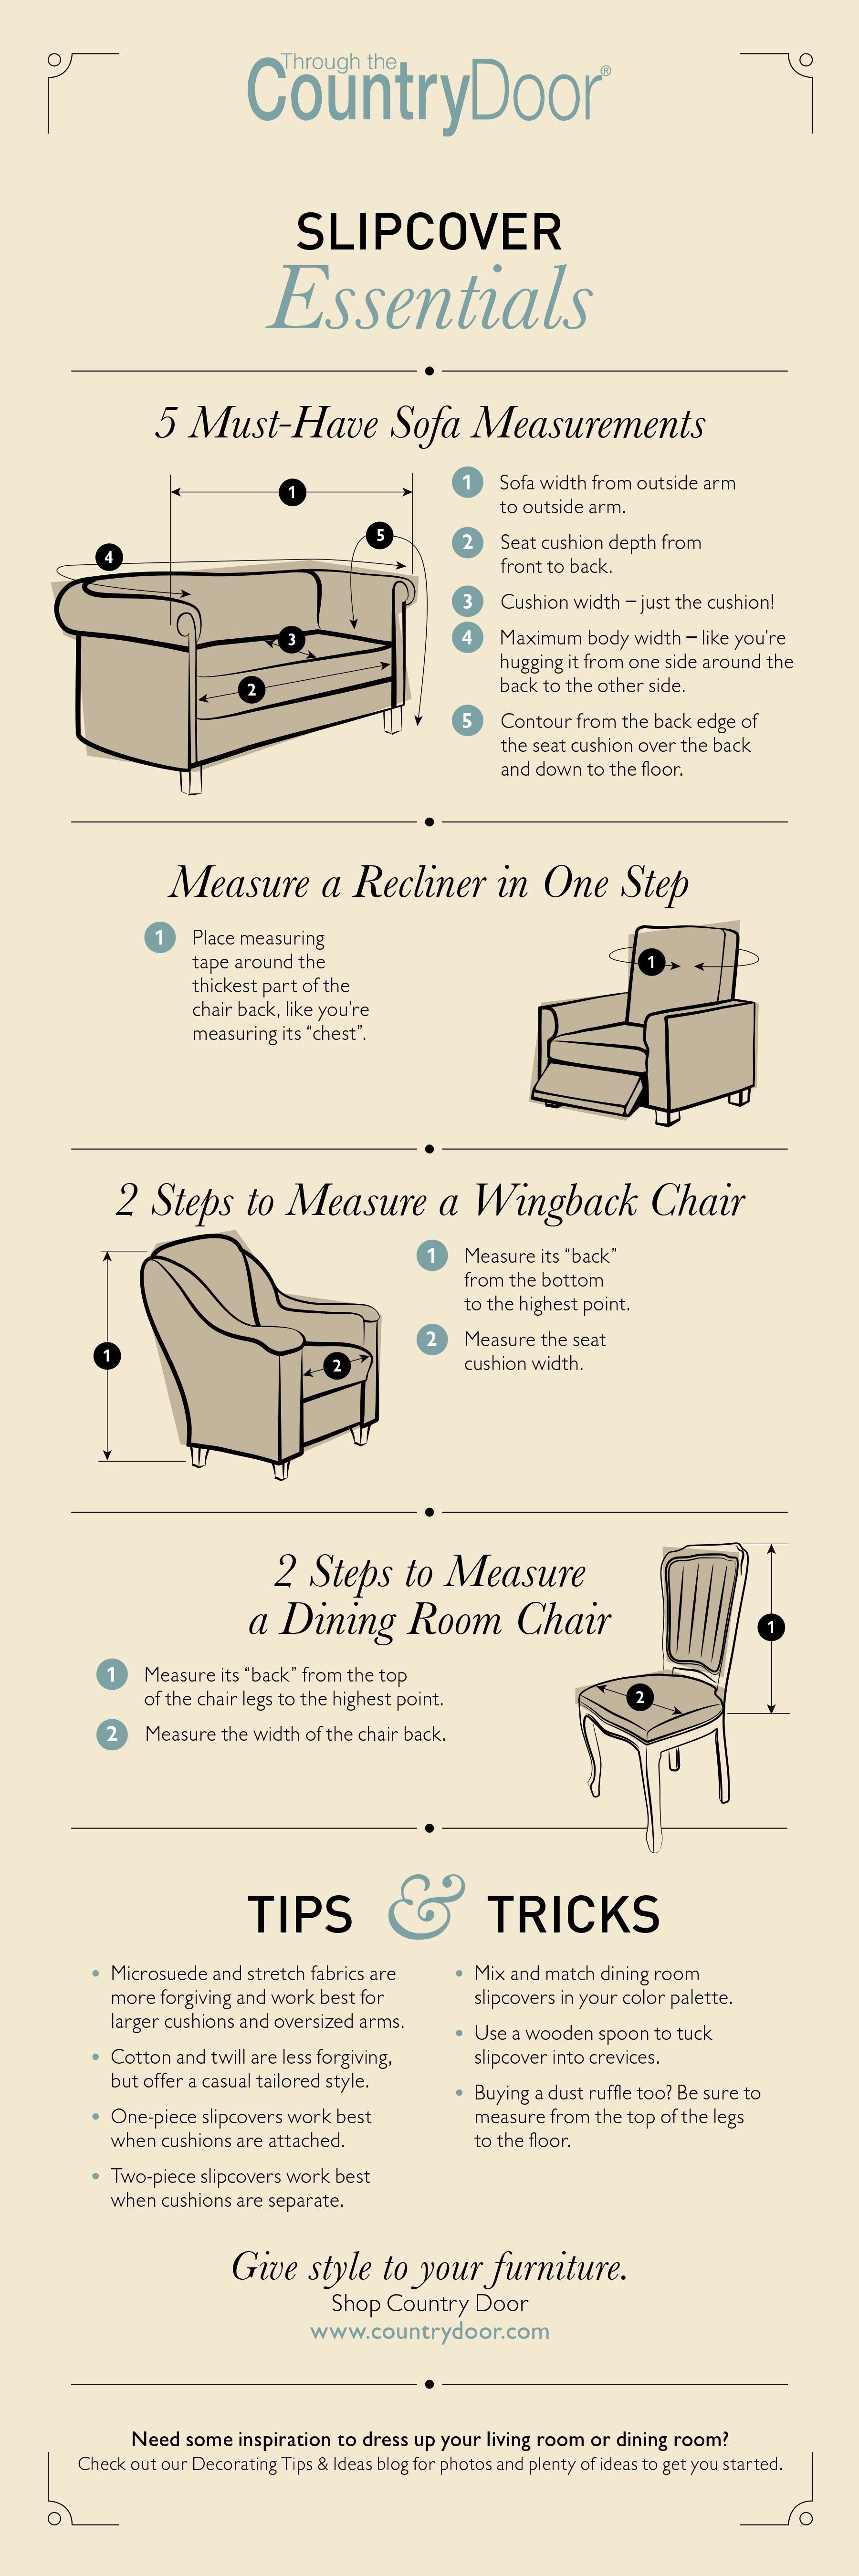 Slipcover Ing Guide With A Few Simple Measurements Slipcovers Give Your Old Furniture New Look Without The Expense Of Having To